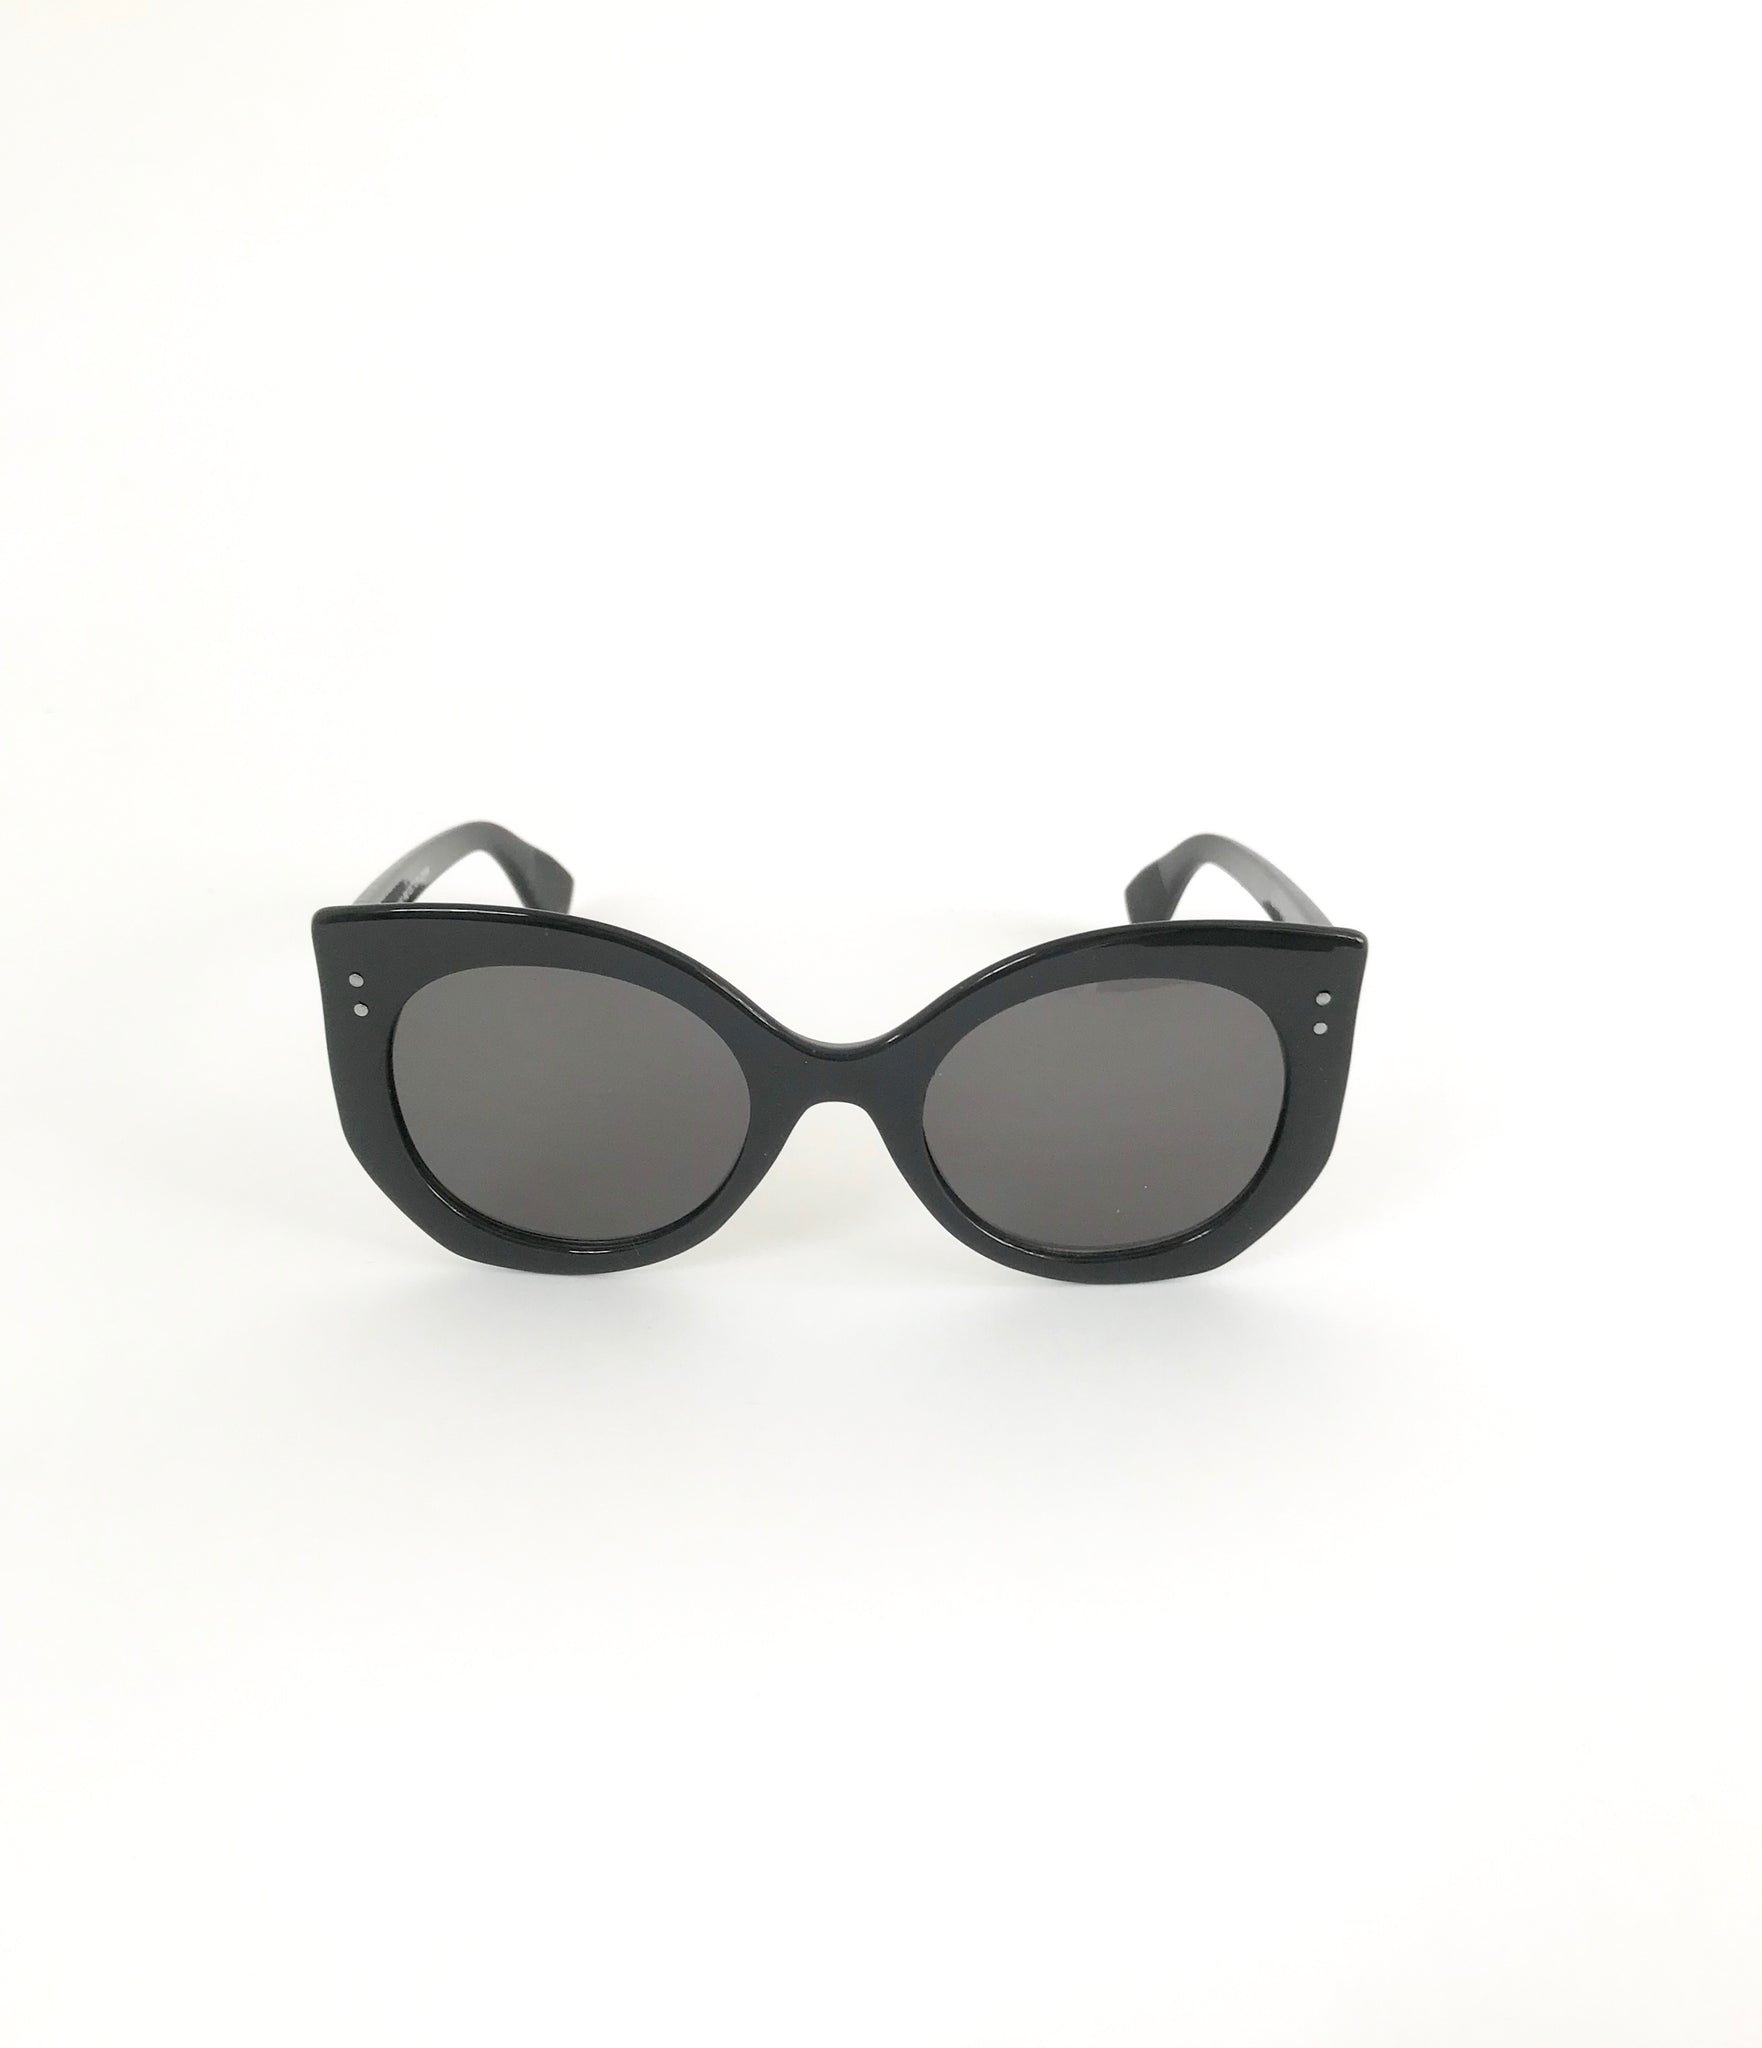 Plastic Oversized Sunglasses